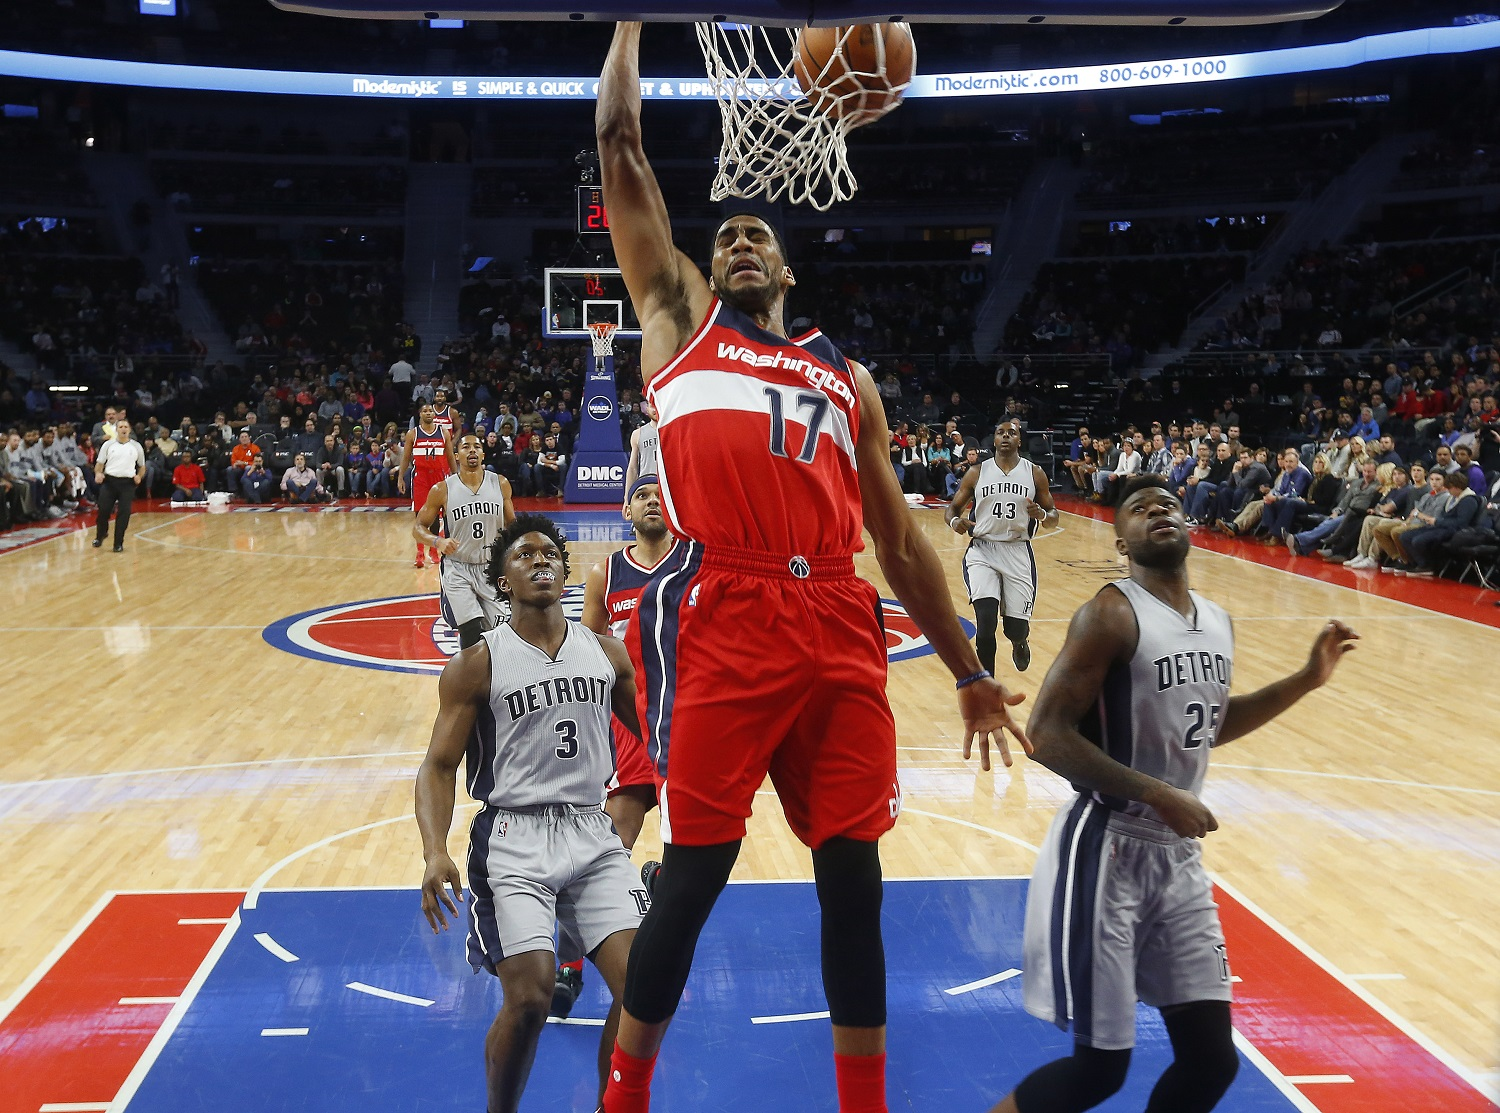 Washington Wizards guard Garrett Temple (17) dunks against the Detroit Pistons in the first half of an NBA basketball game Saturday, Nov. 21, 2015 in Auburn Hills, Mich. (AP Photo/Paul Sancya)